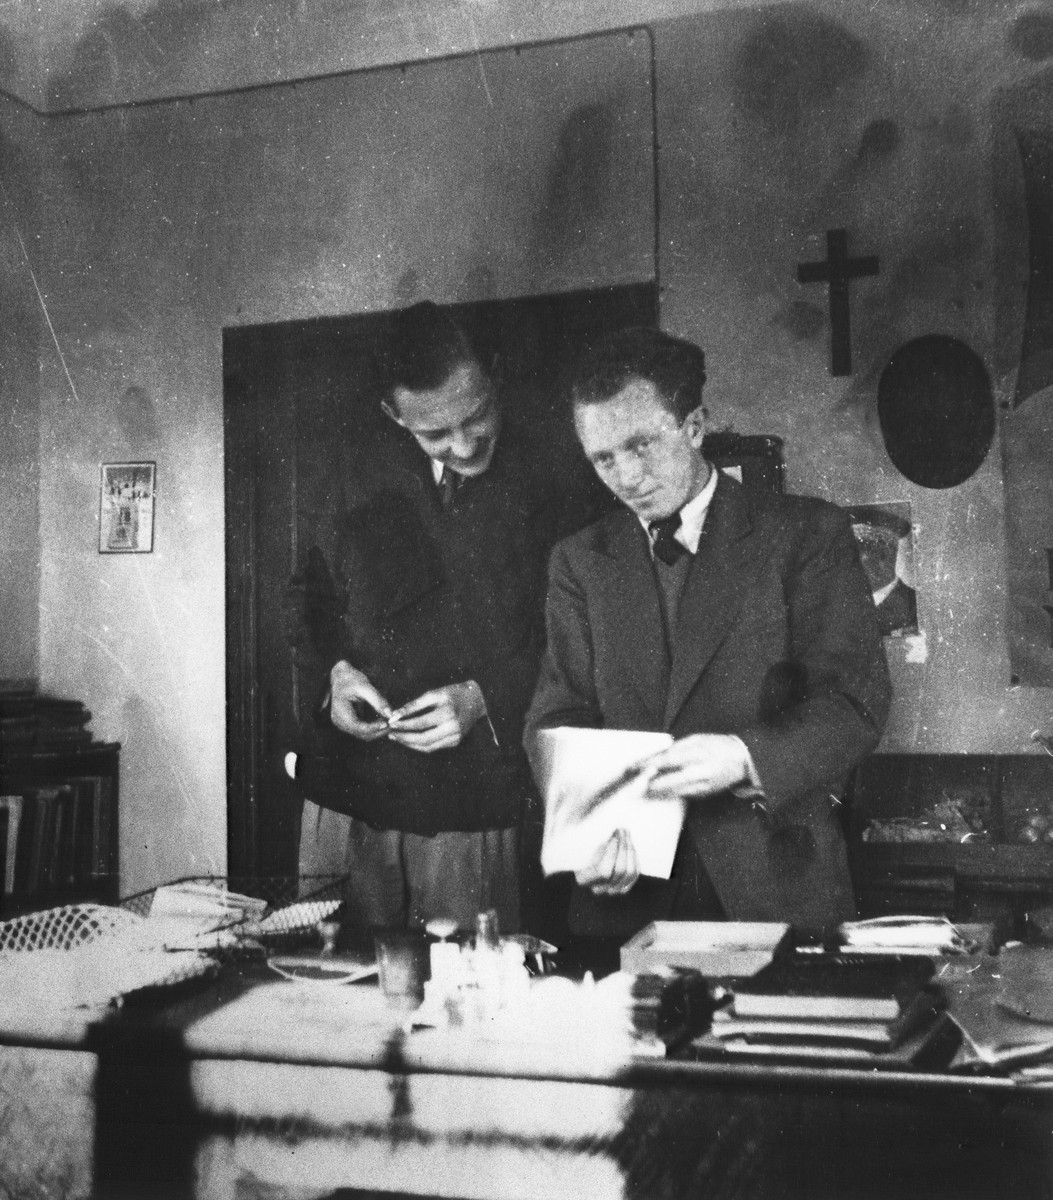 Joseph Fisera and a colleague look over some papers in his office in the Vence children's home.